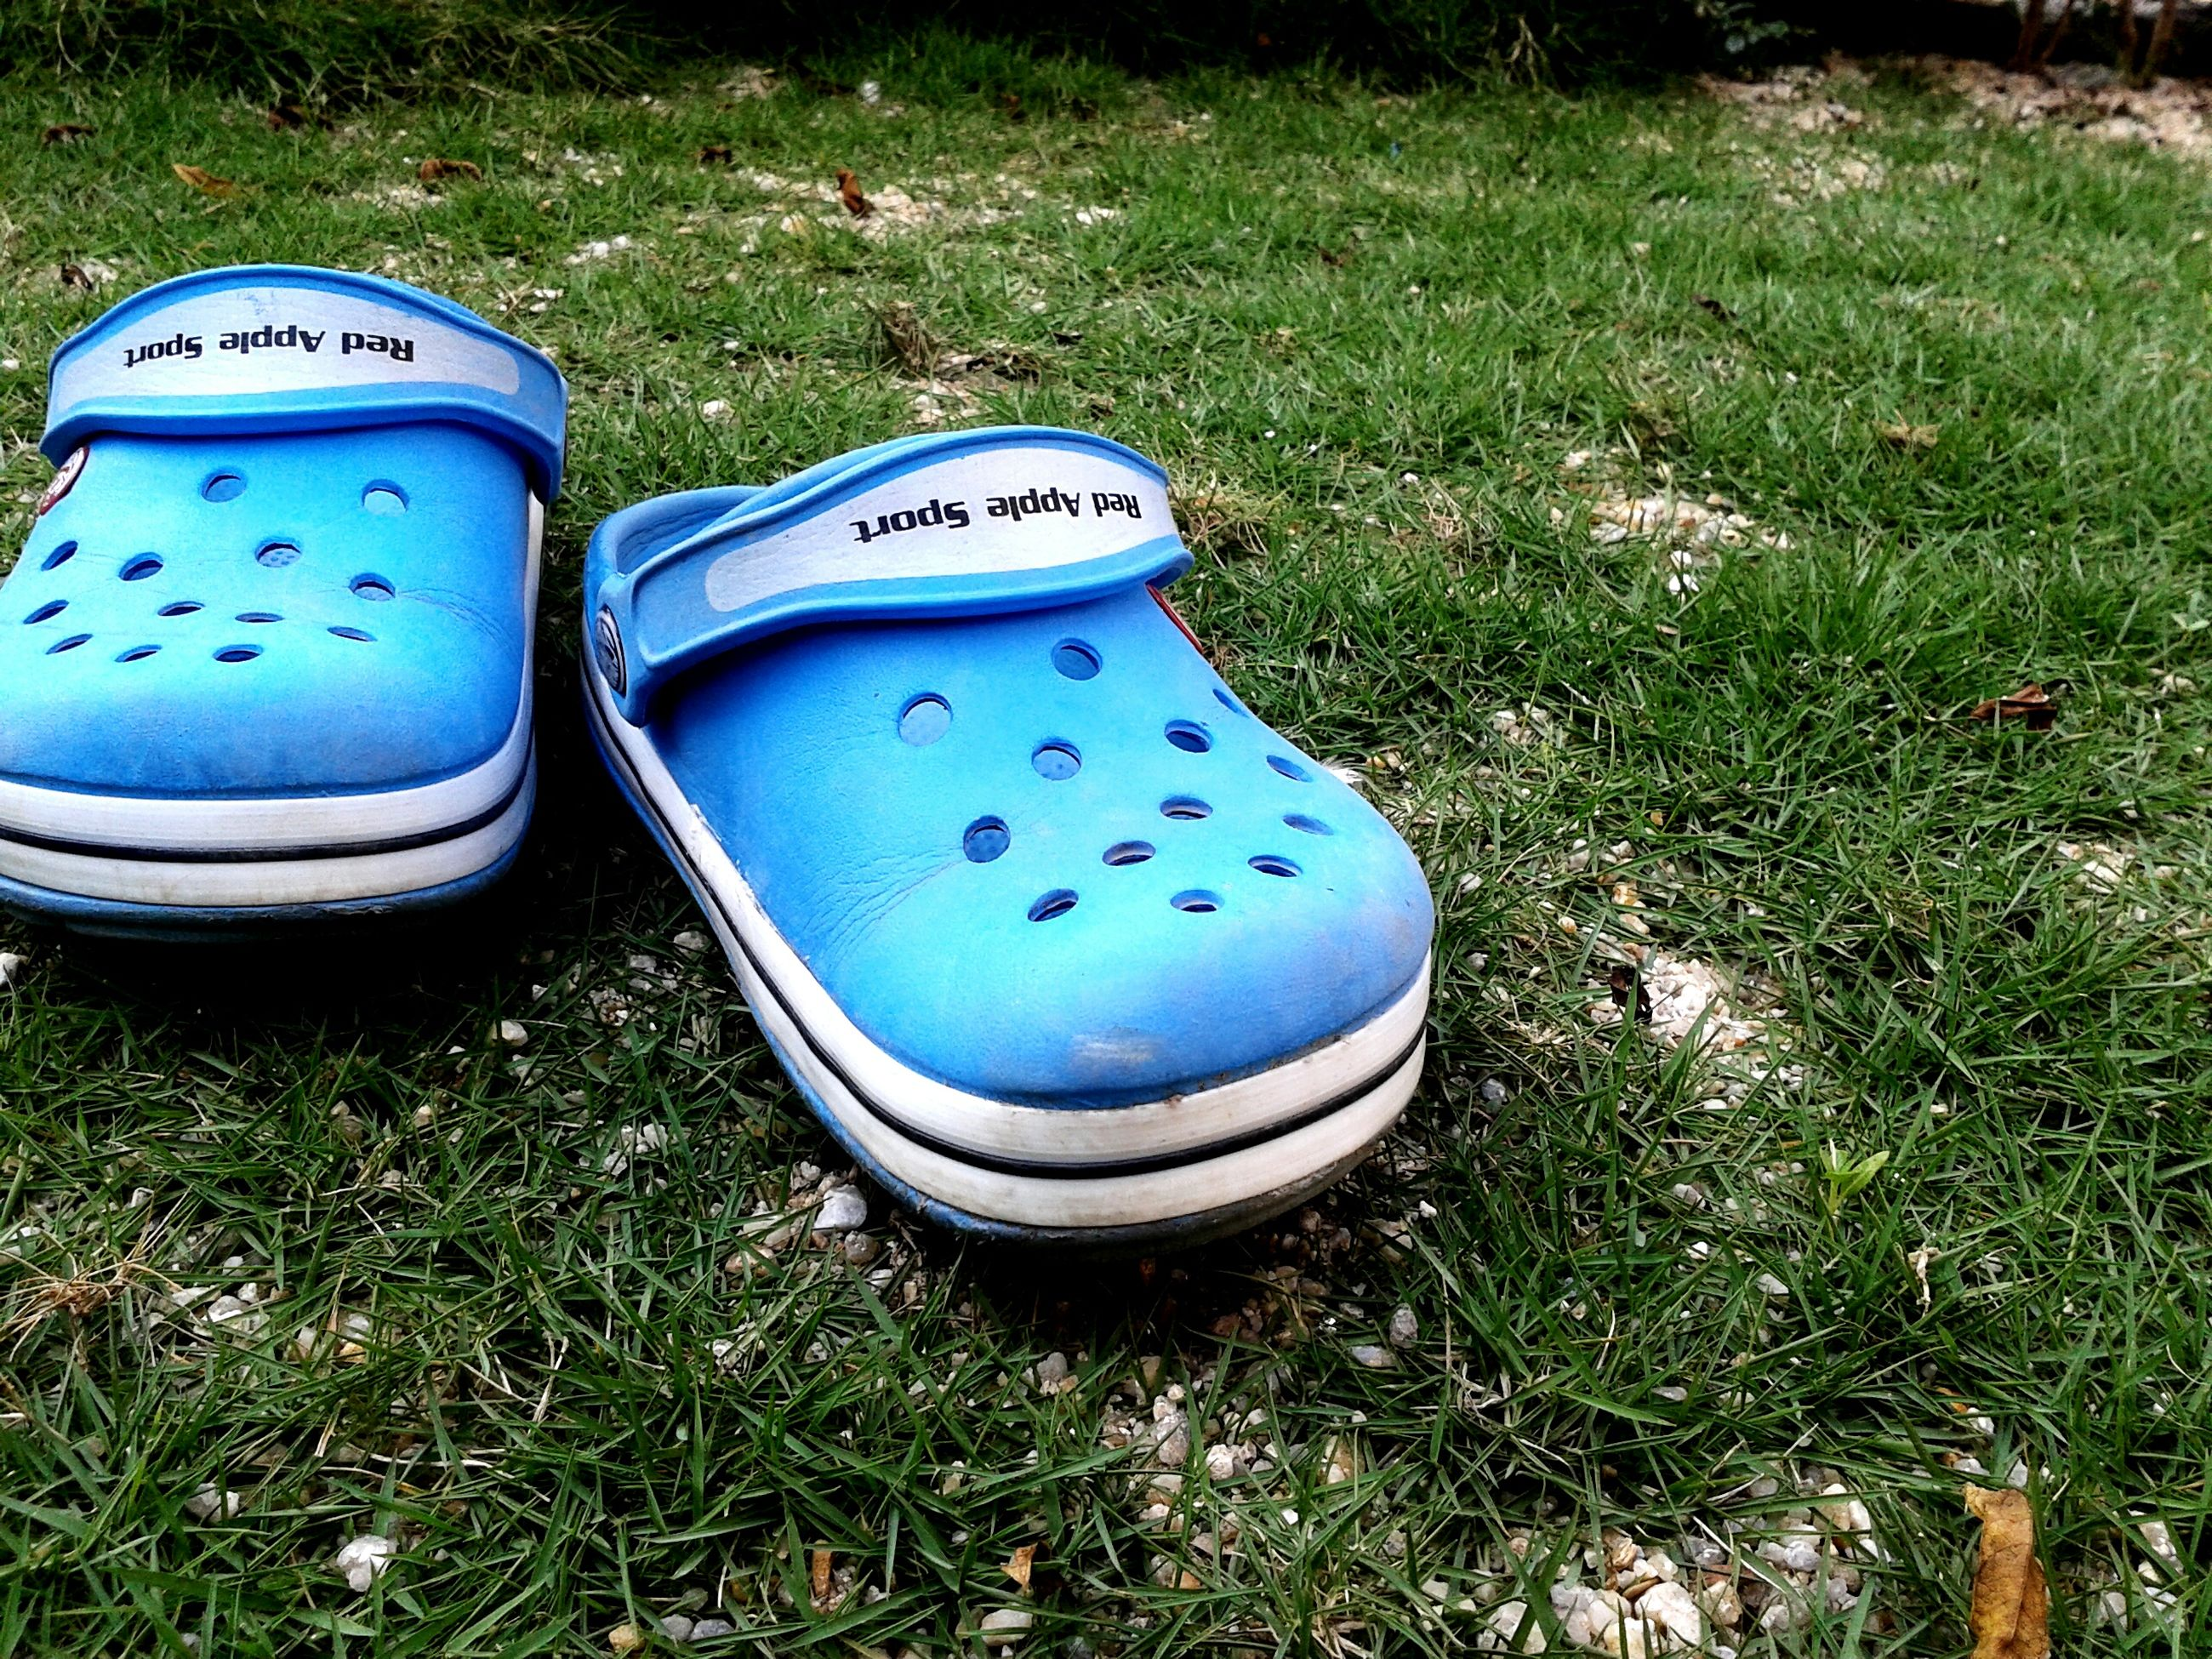 grass, blue, field, grassy, shoe, high angle view, green color, footwear, pair, abandoned, day, outdoors, low section, close-up, still life, plastic, no people, directly above, nature, lawn